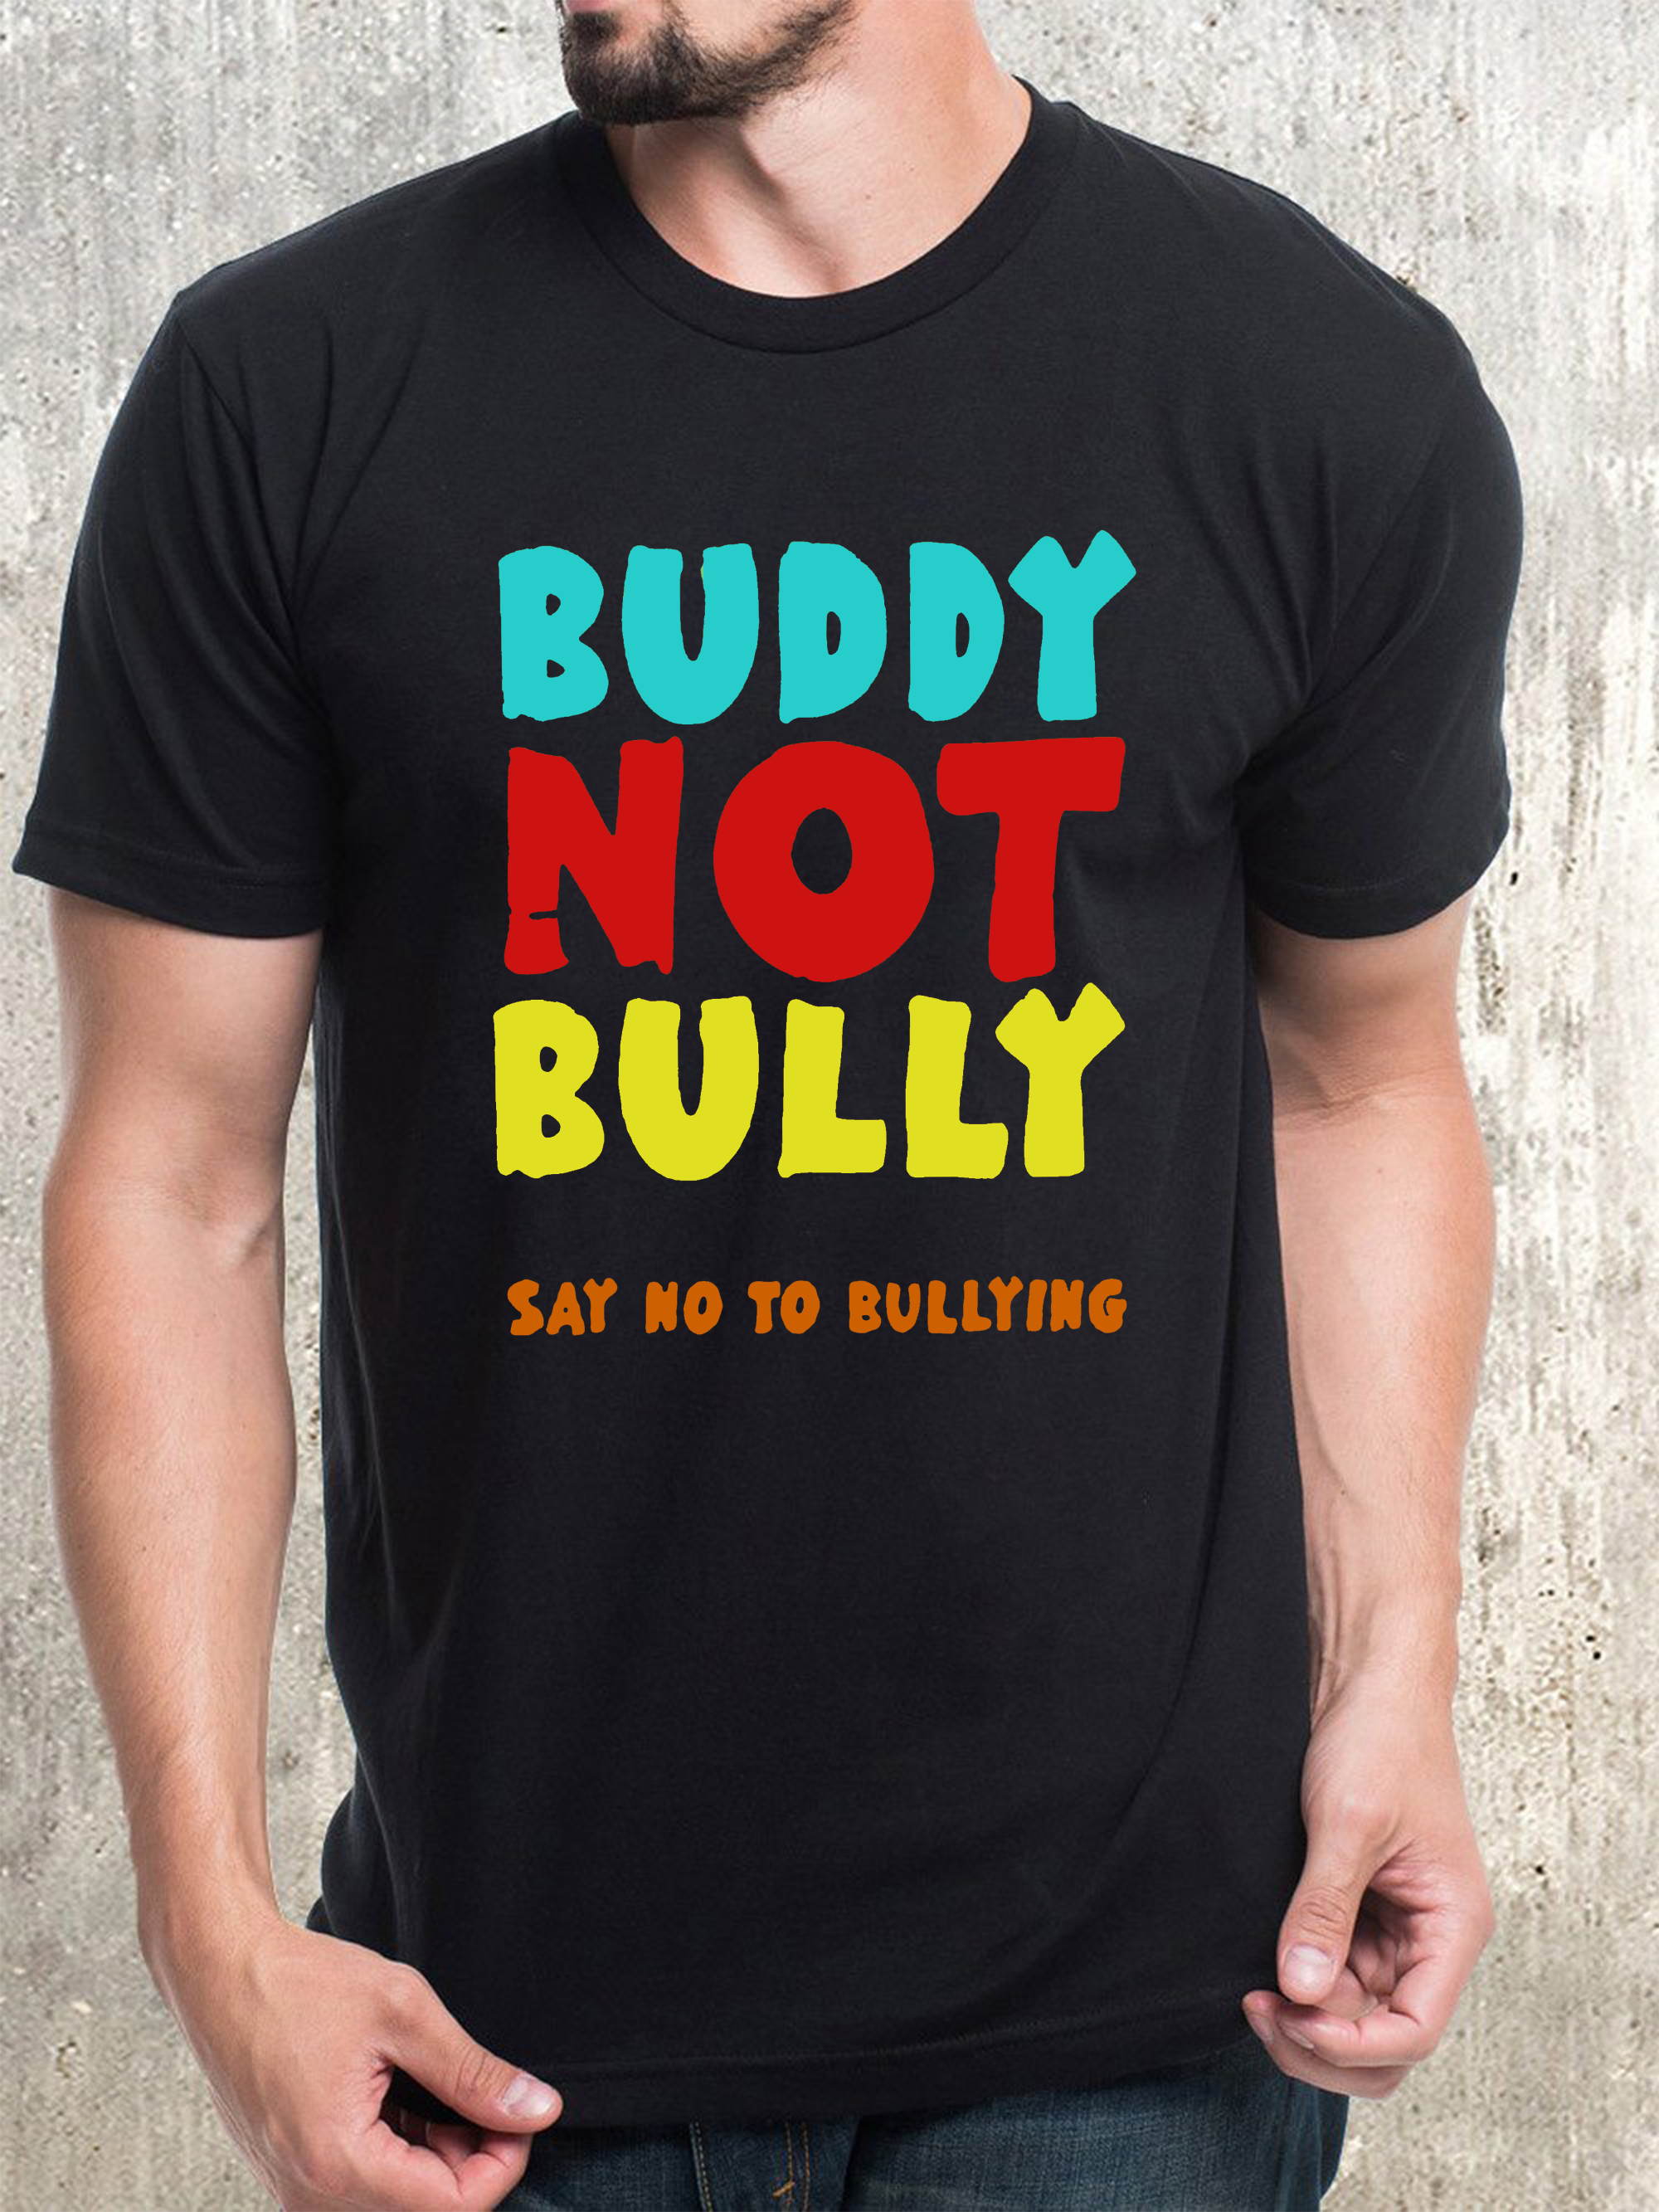 The Bullying Awareness Tshirt Says Be A Buddy Not A Bully